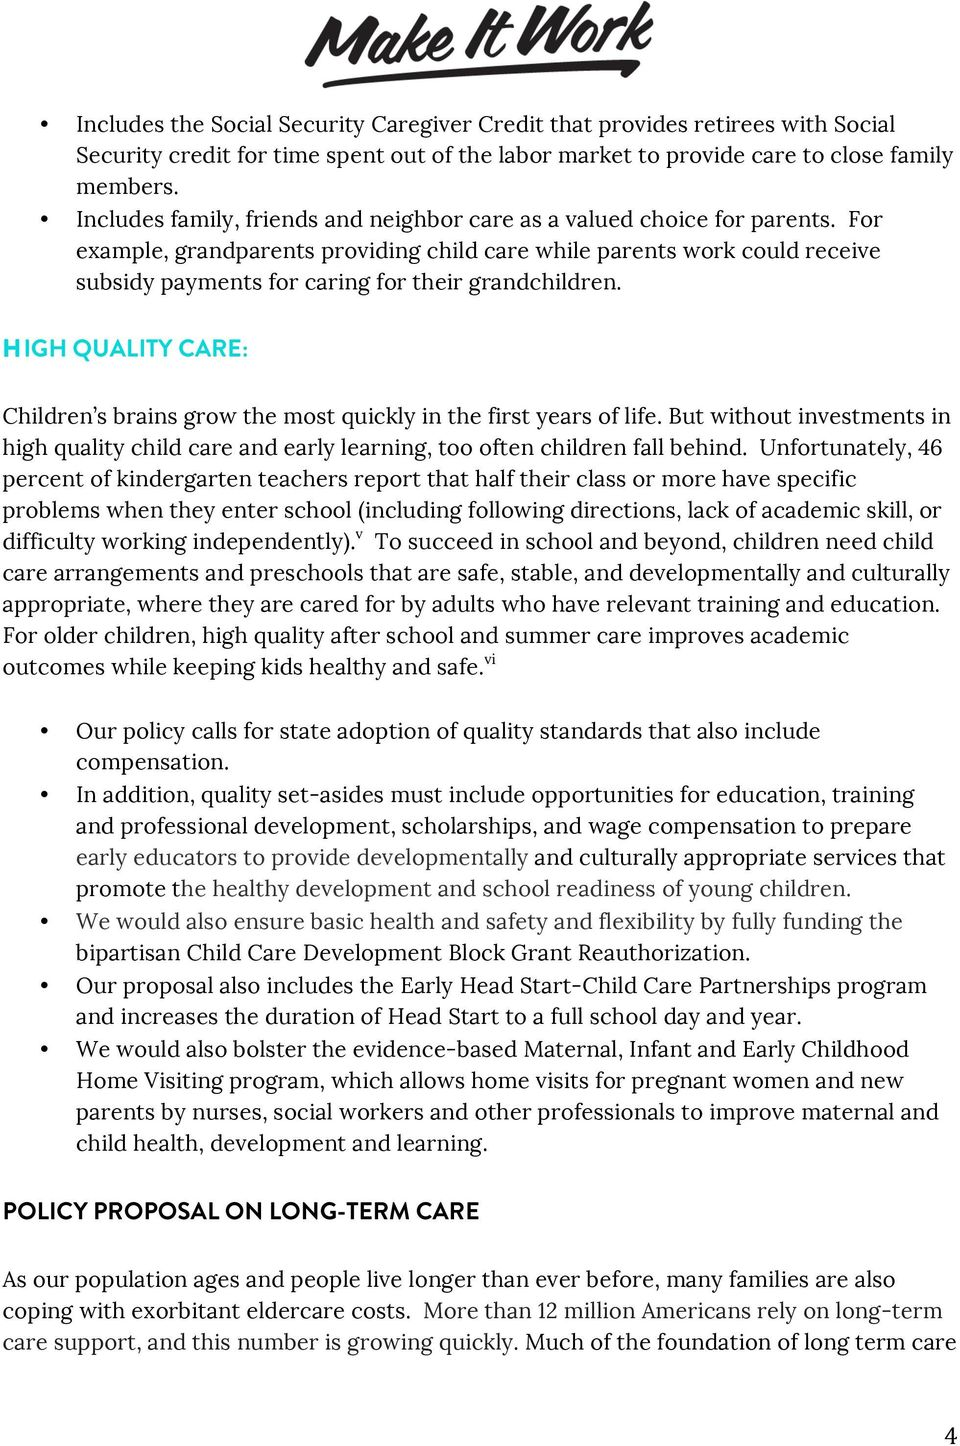 HIGH QUALITY CARE: Children s brains grw the mst quickly in the first years f life. But withut investments in high quality child care and early learning, t ften children fall behind.